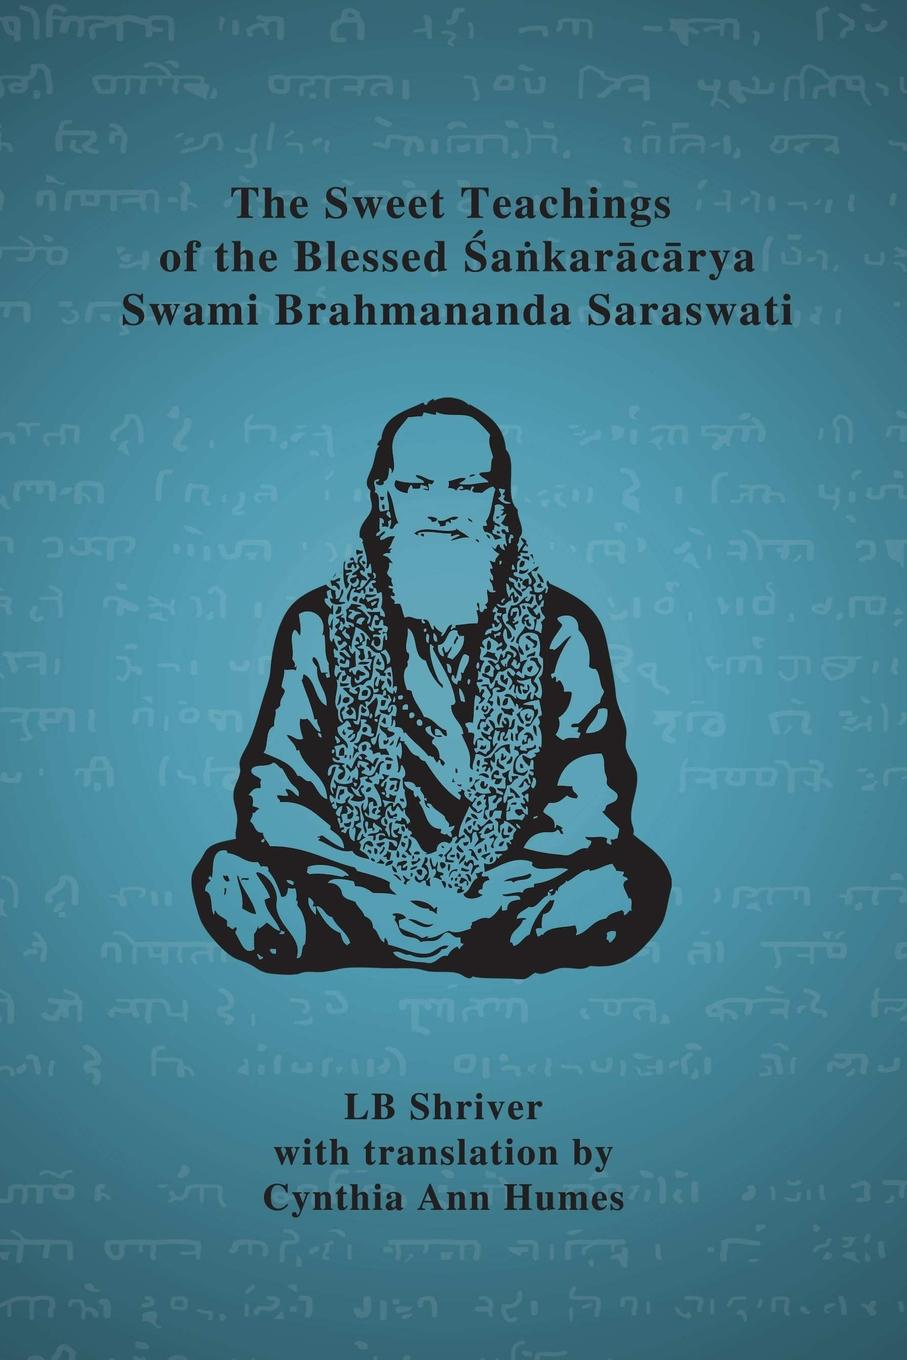 LB Shriver, Translation by Cynthia Ann Humes The Sweet Teachings of the Blessed Sankaracarya Swami Brahmananda Saraswati lionel shriver the new republic